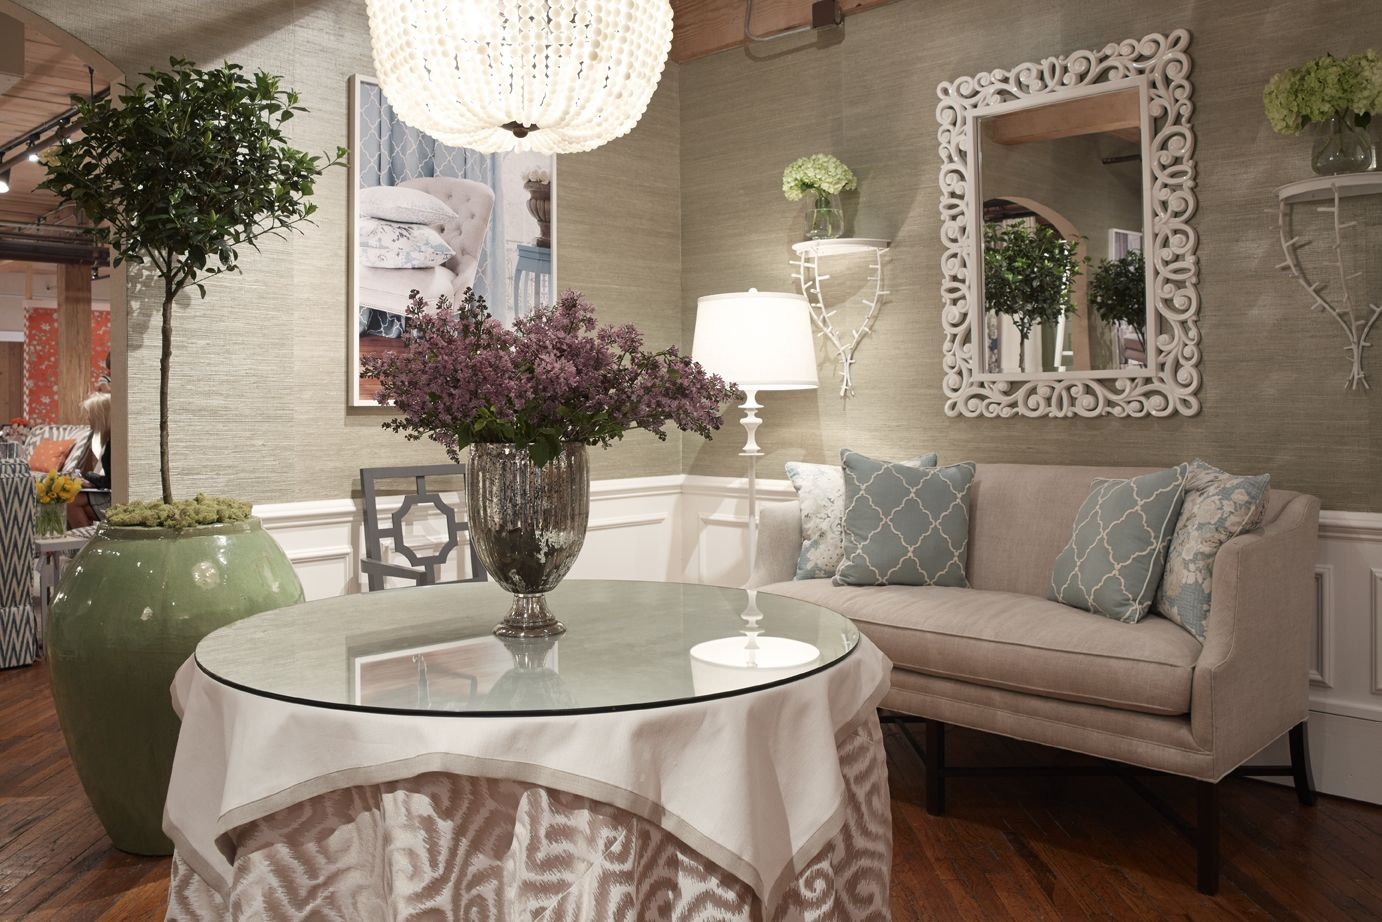 Thibaut Fine Furniture Showroom in High Point, located at